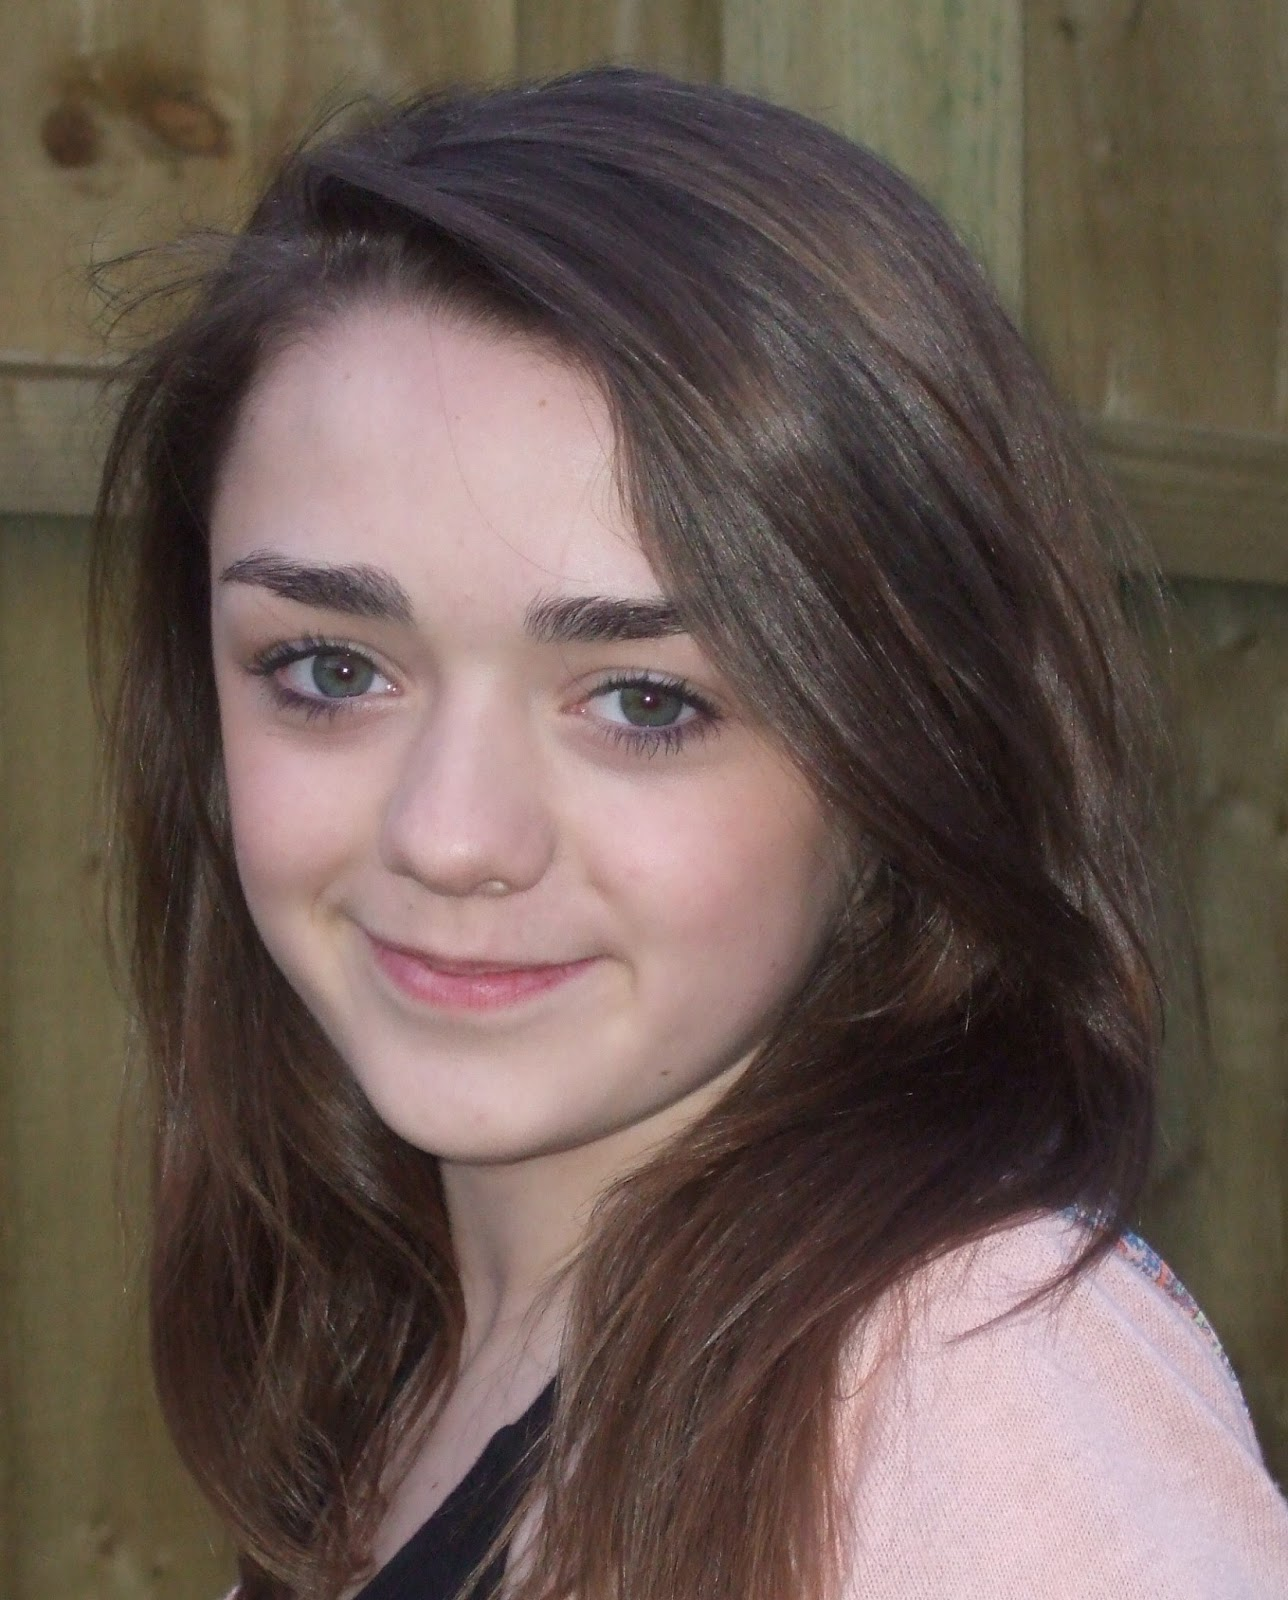 Maisie Williams PhotosMaisie Williams